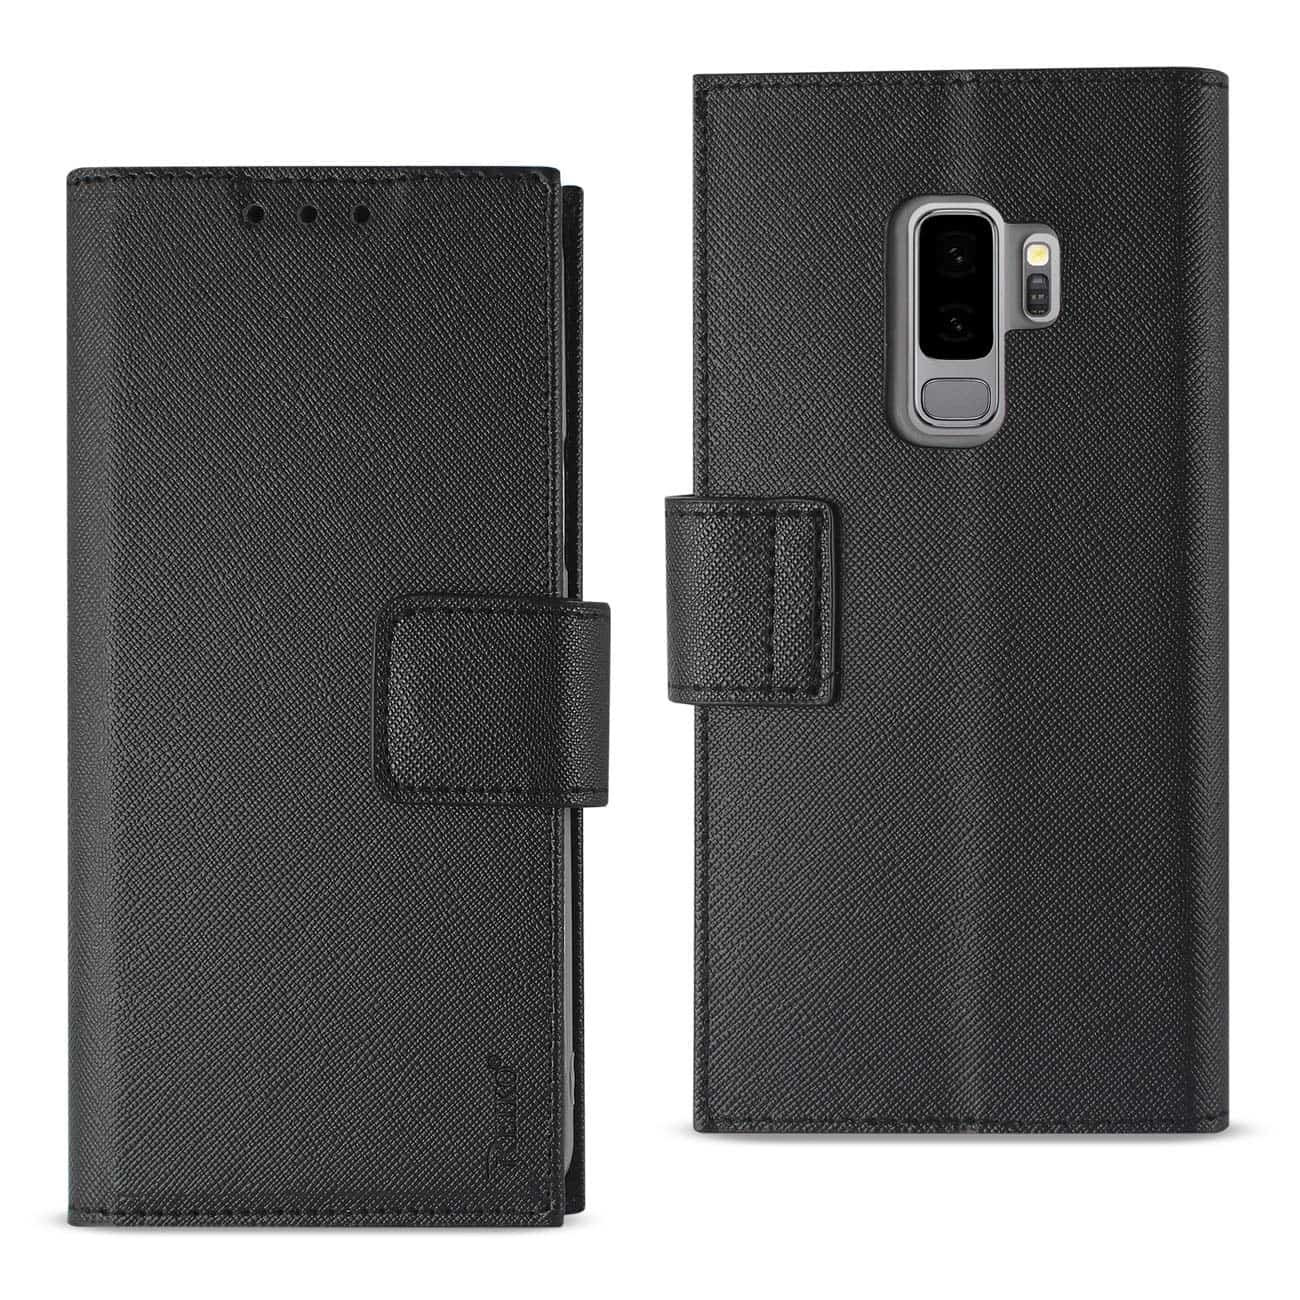 Samsung Galaxy S9 Plus 3-In-1 Wallet Case In Black